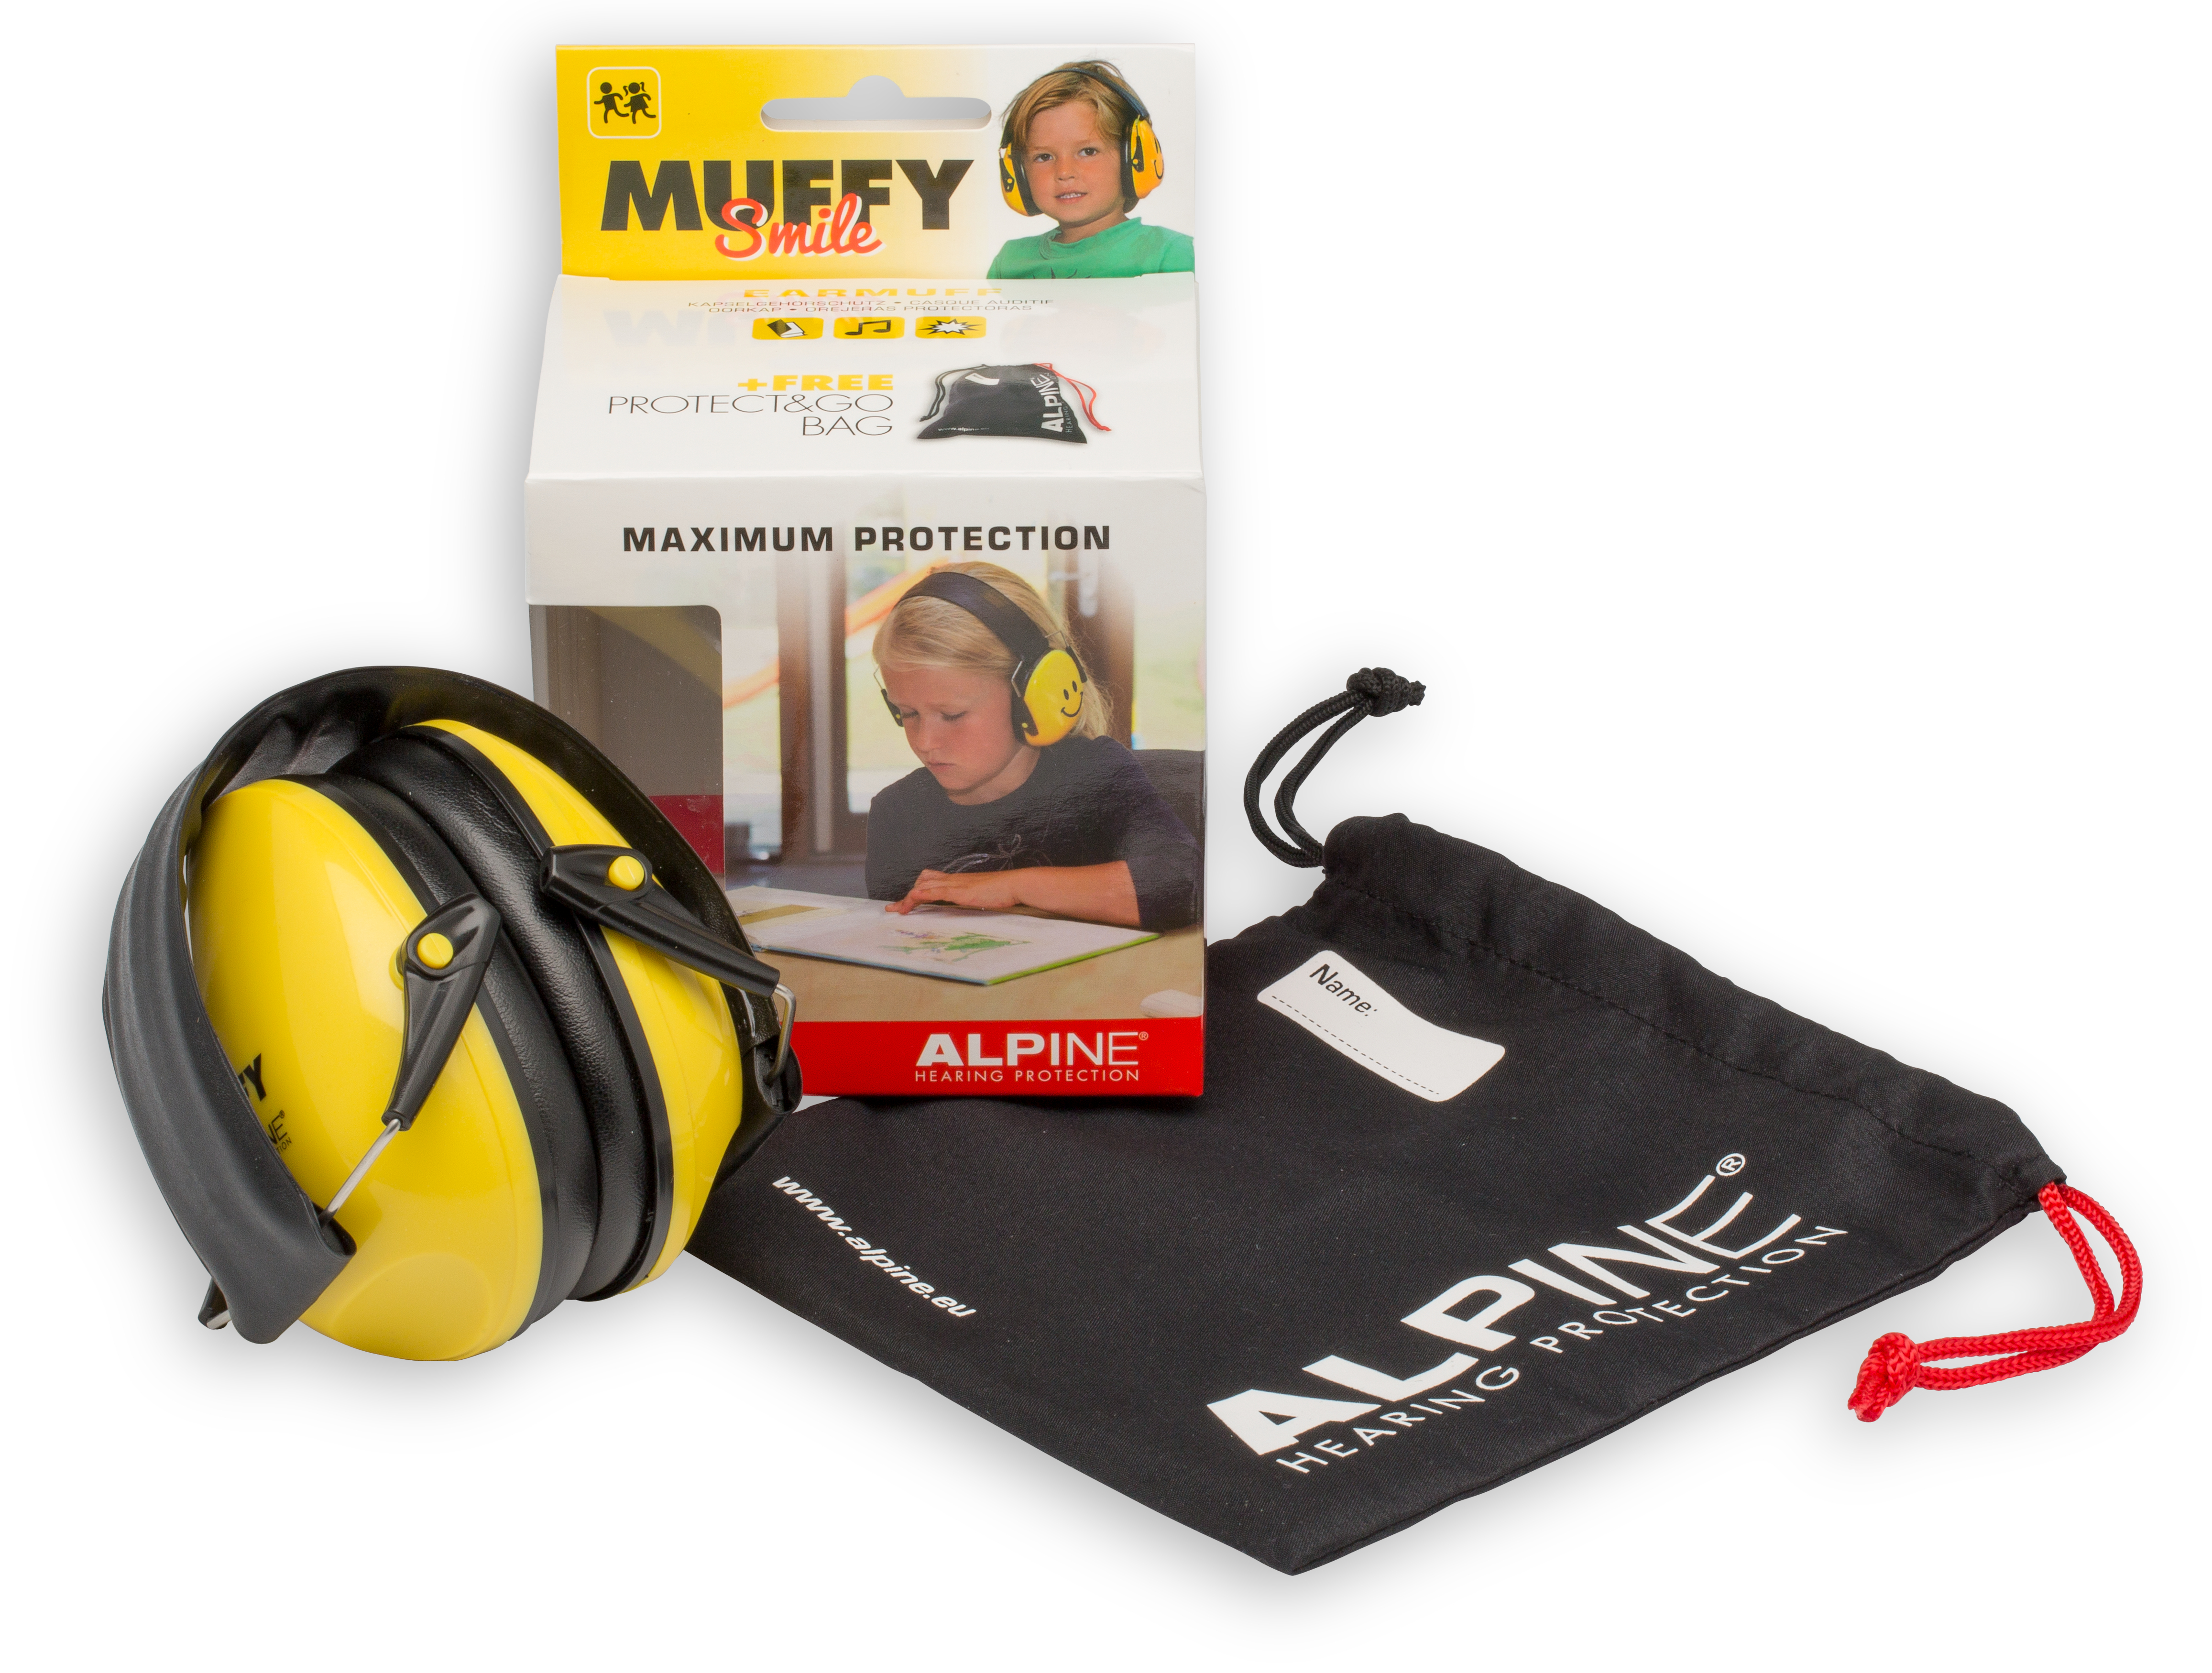 Alpine Muffy Smile packshot